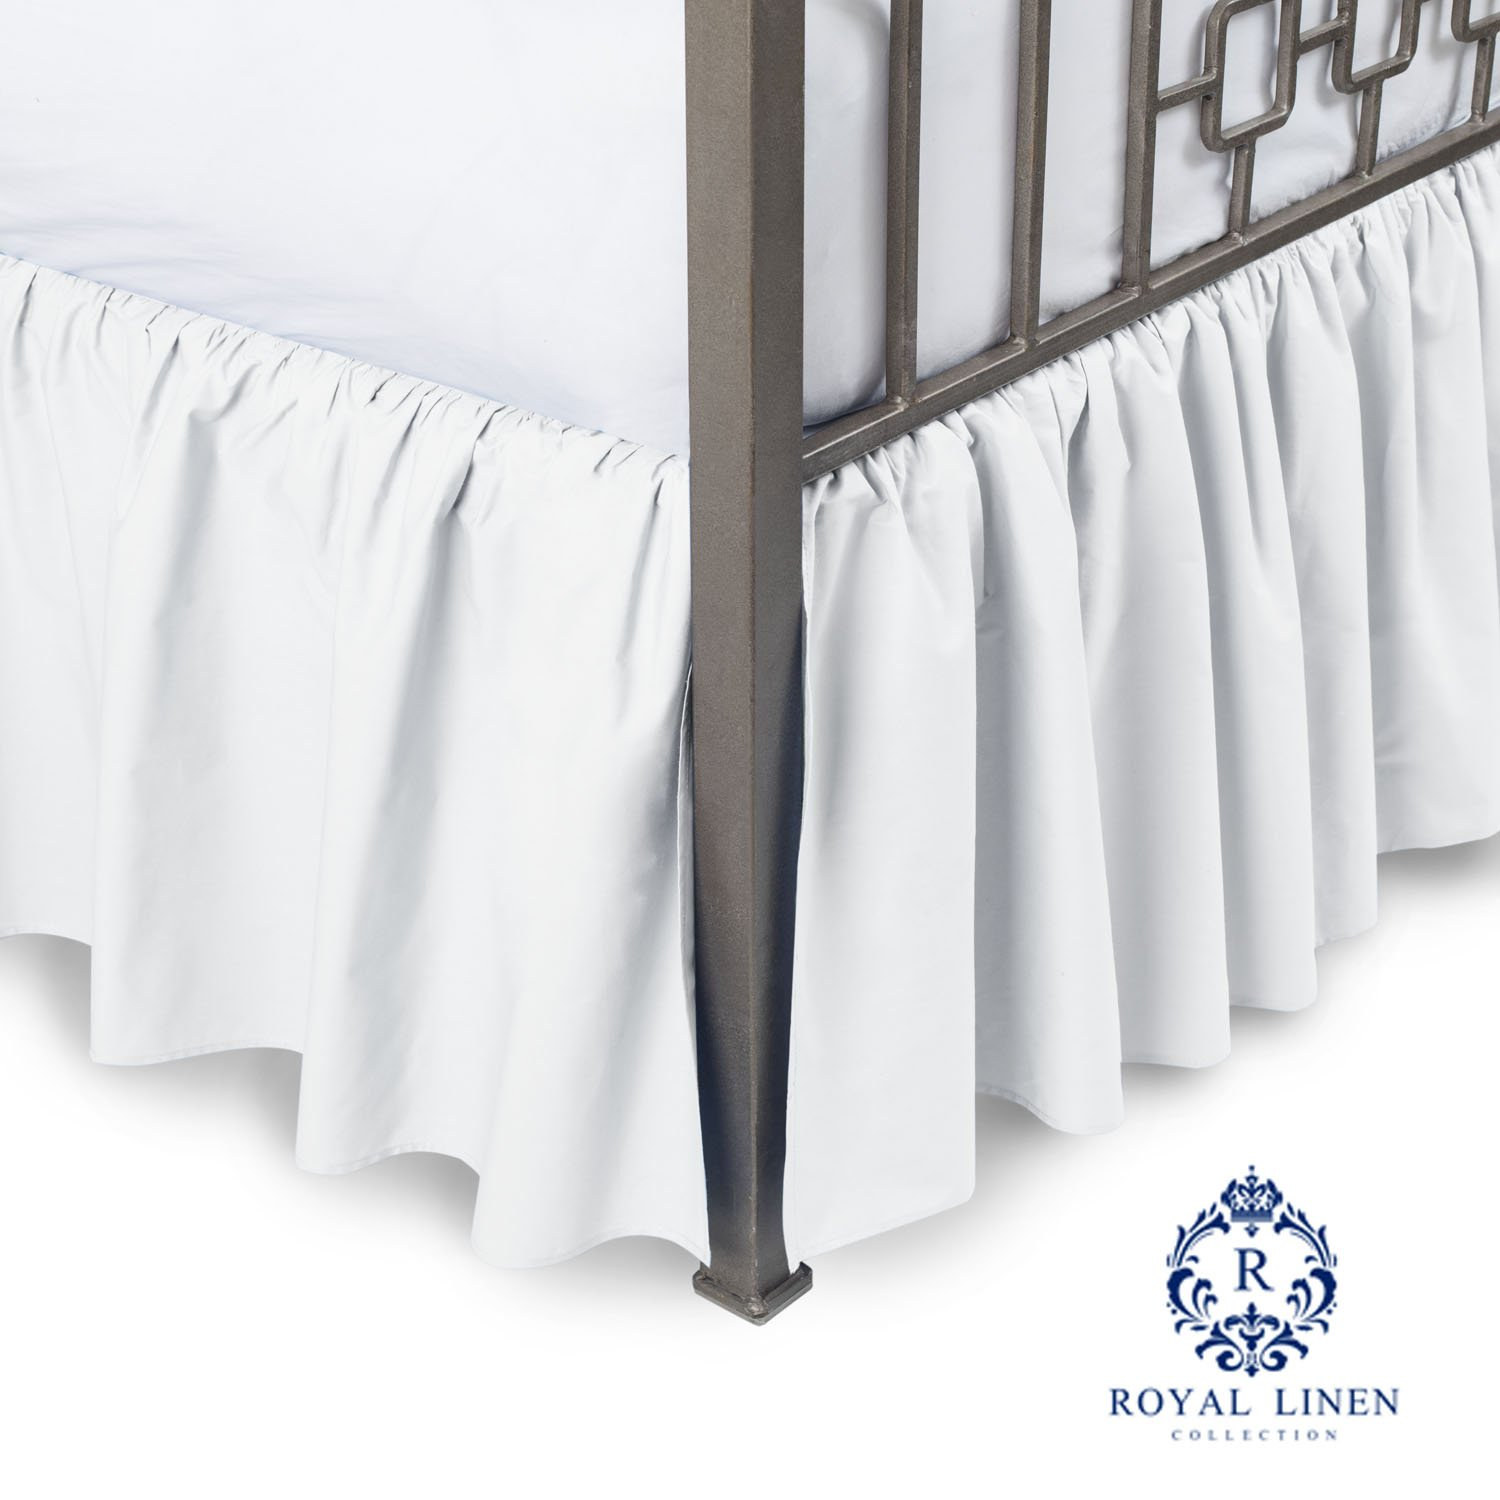 Royal Linen Collection Hotel Quality 800TC Pure Cotton Dust Ruffle Bed Skirt 18'' Drop length 100% Natural Cotton California King Size White Solid